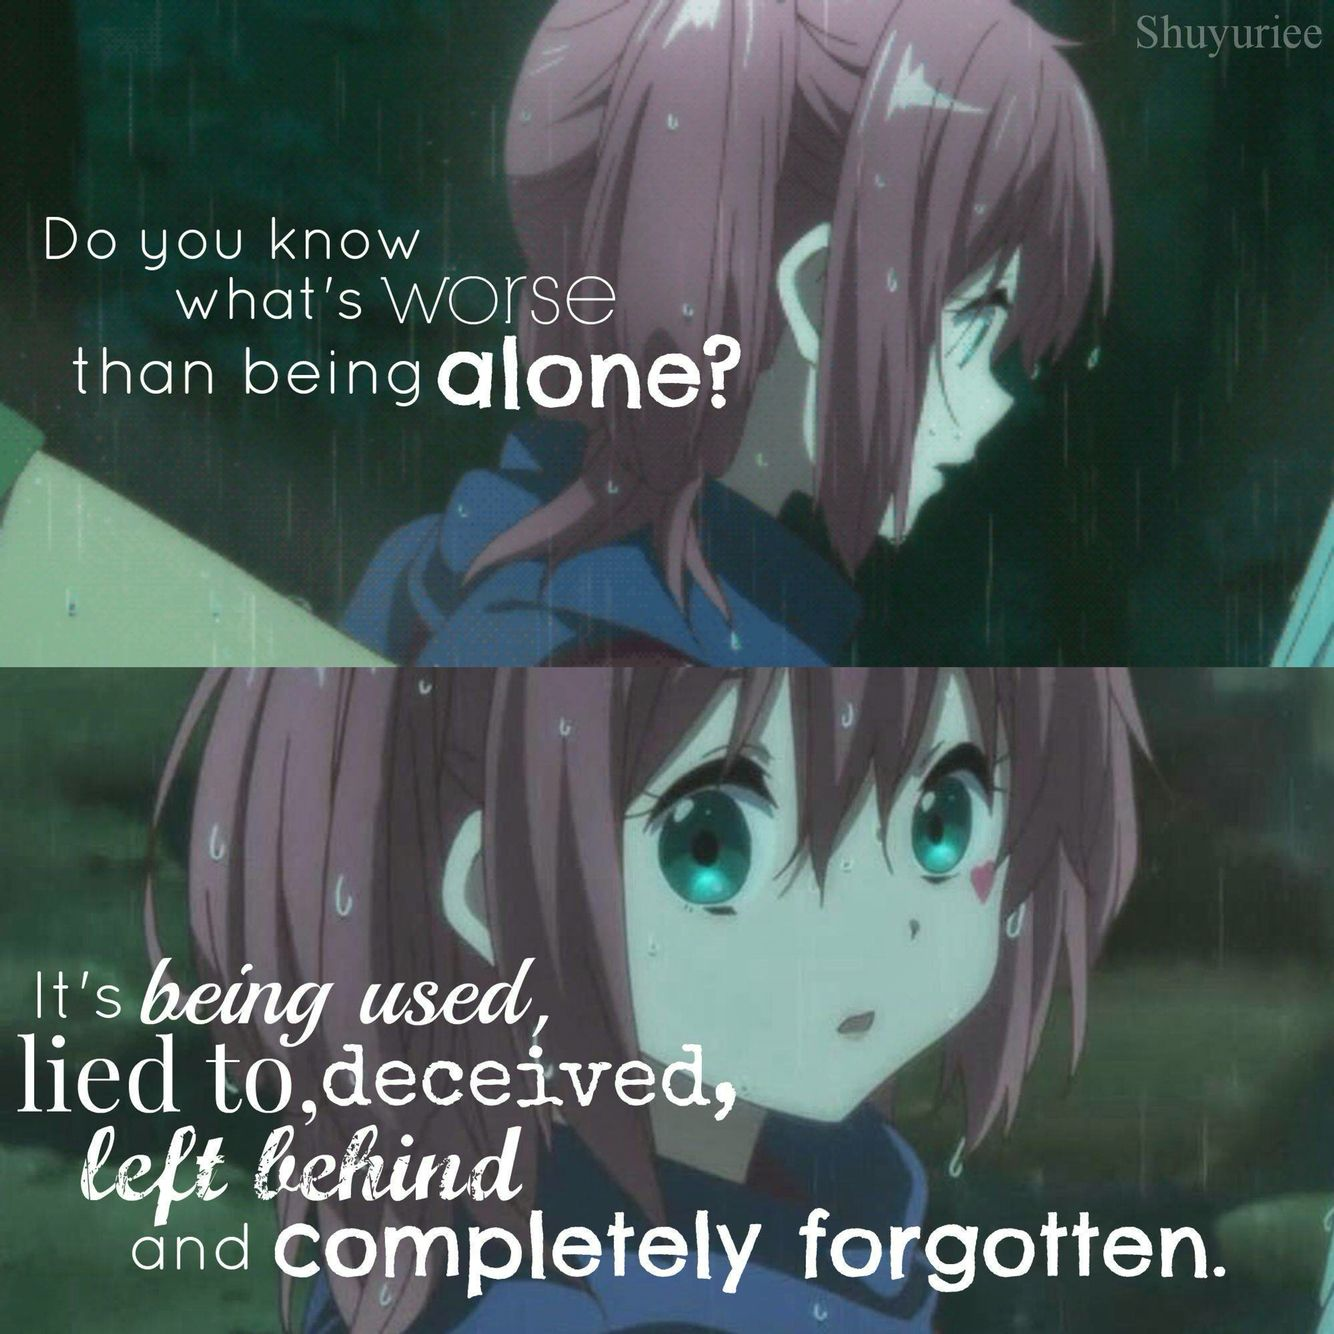 Sad Boy Alone Quotes: This Happens To Me All The Time...I Get Used, Lied To